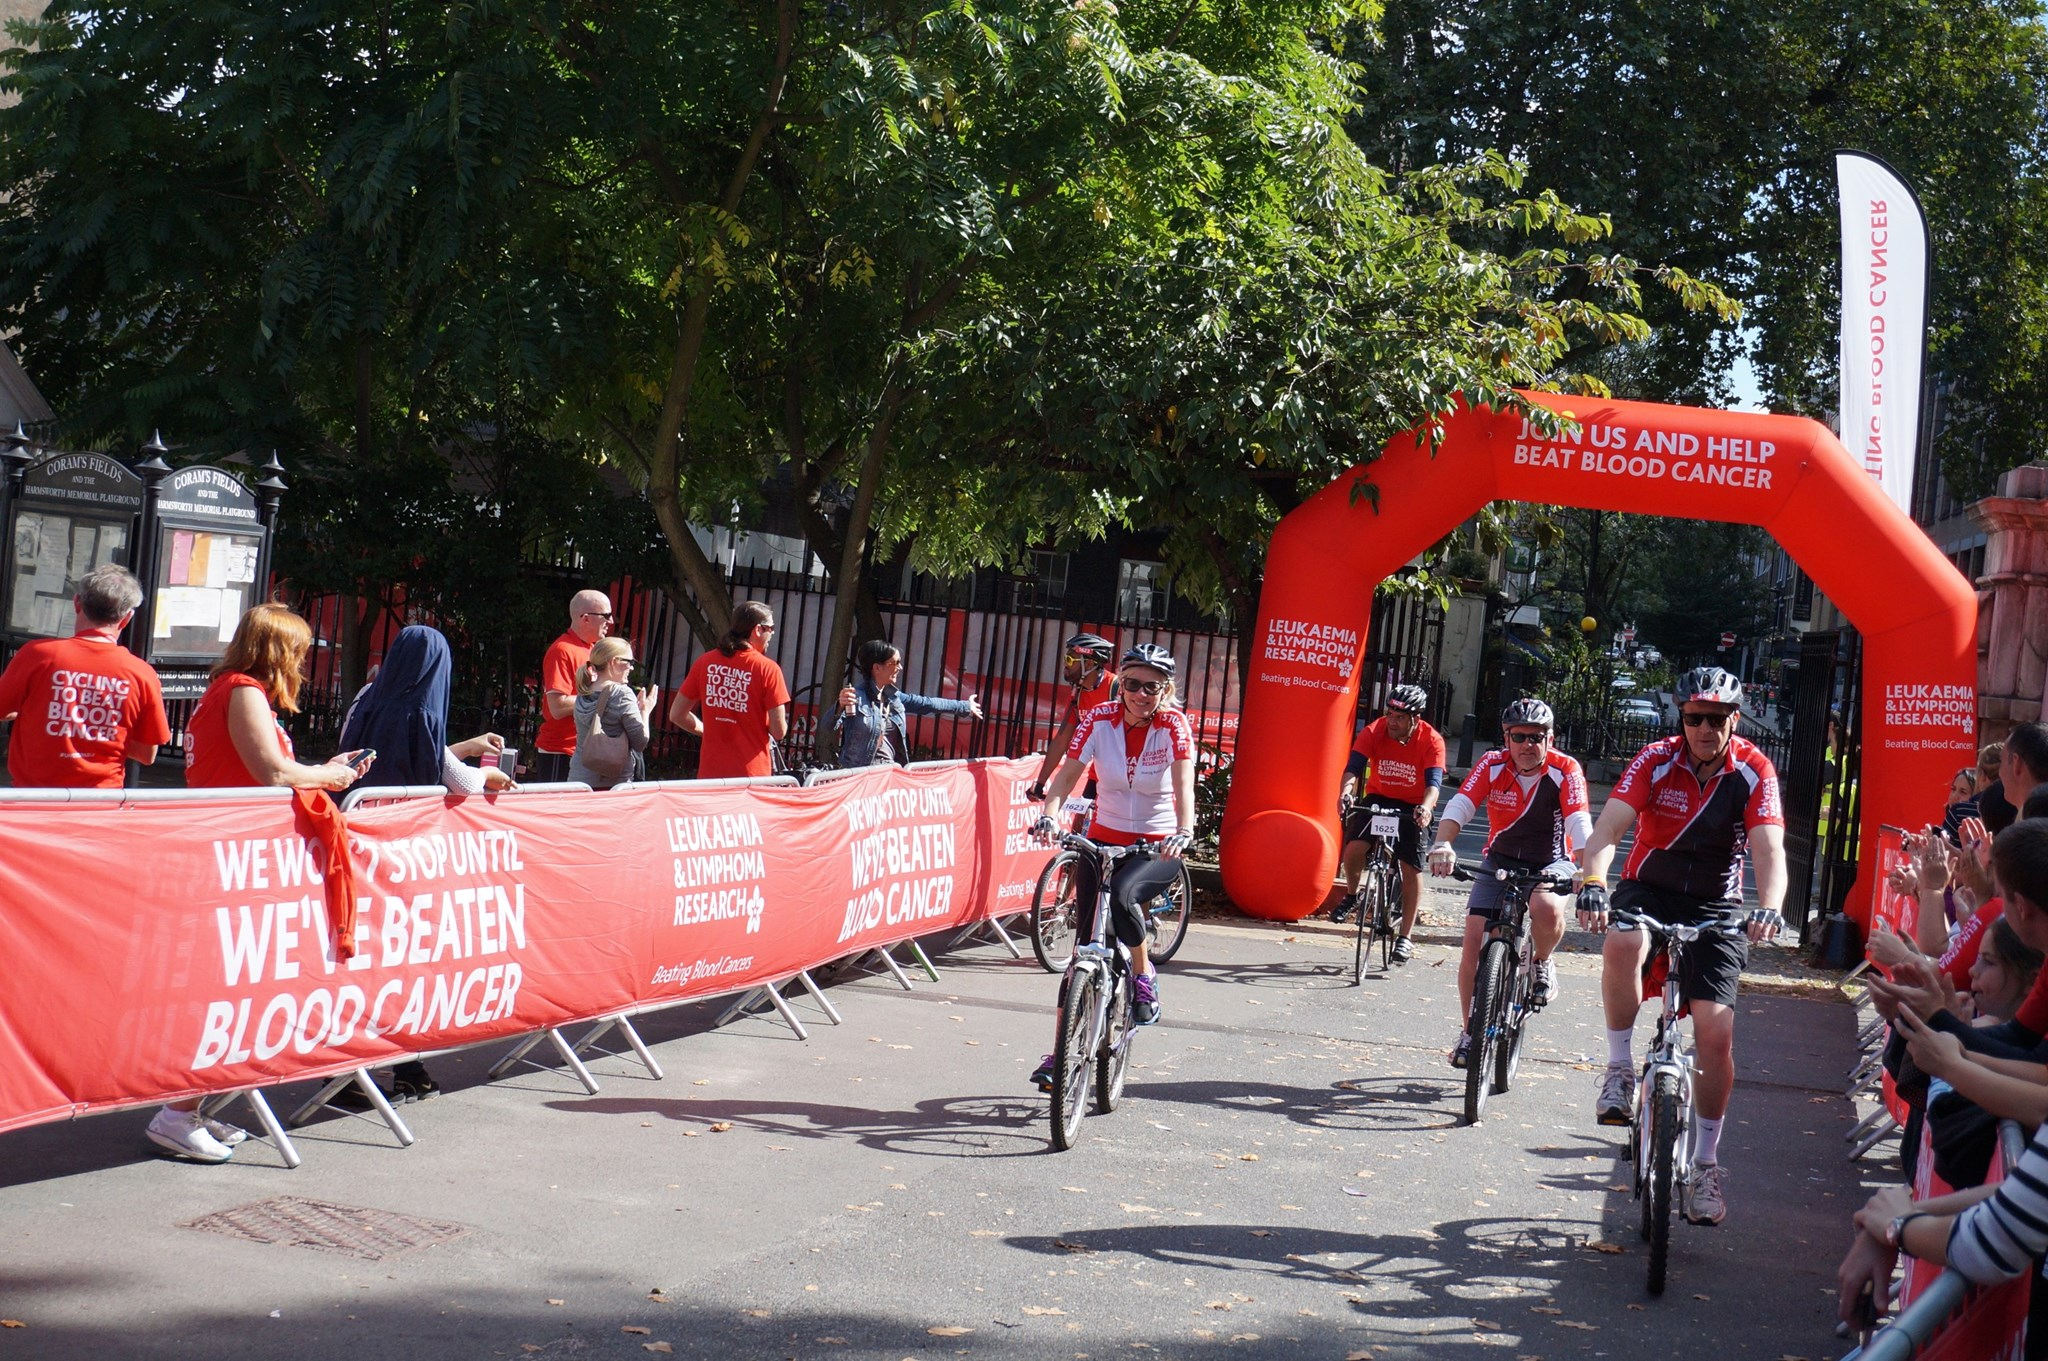 Finishing point at London Coram's Fields